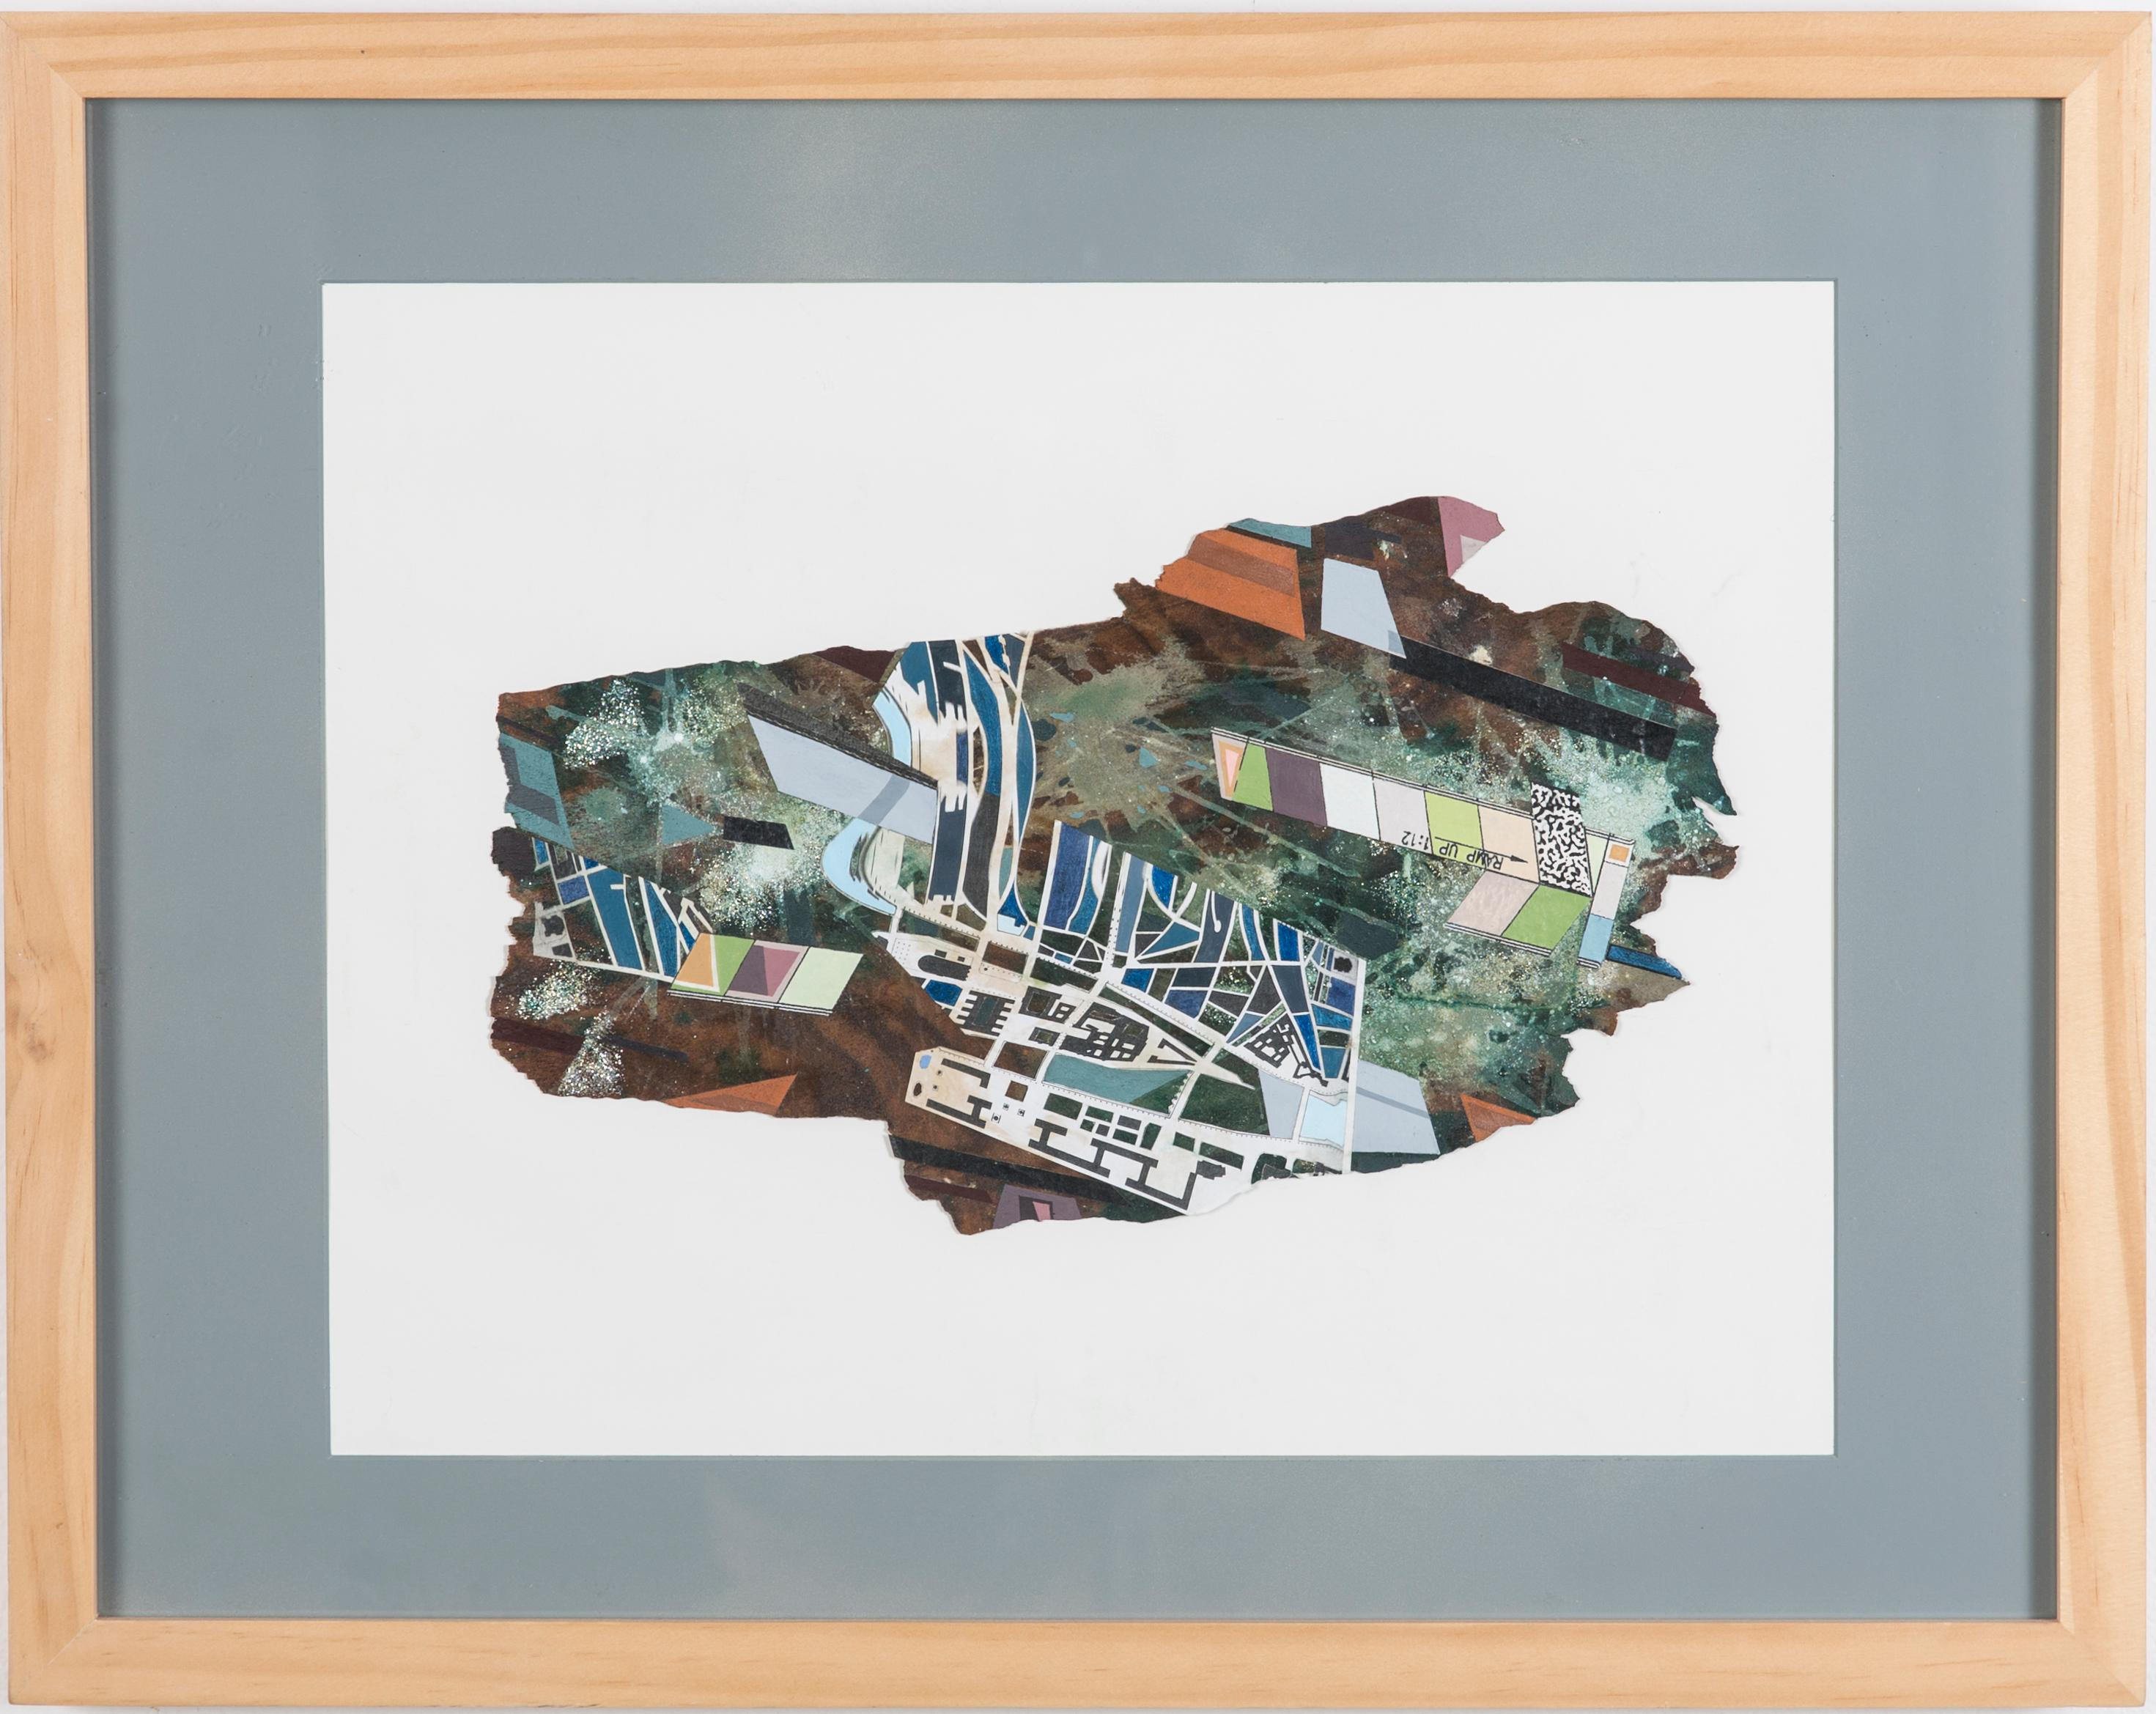 Untitled Mixed Media Collage on Raw Tree Bark- Colorful, Gridded Geometric